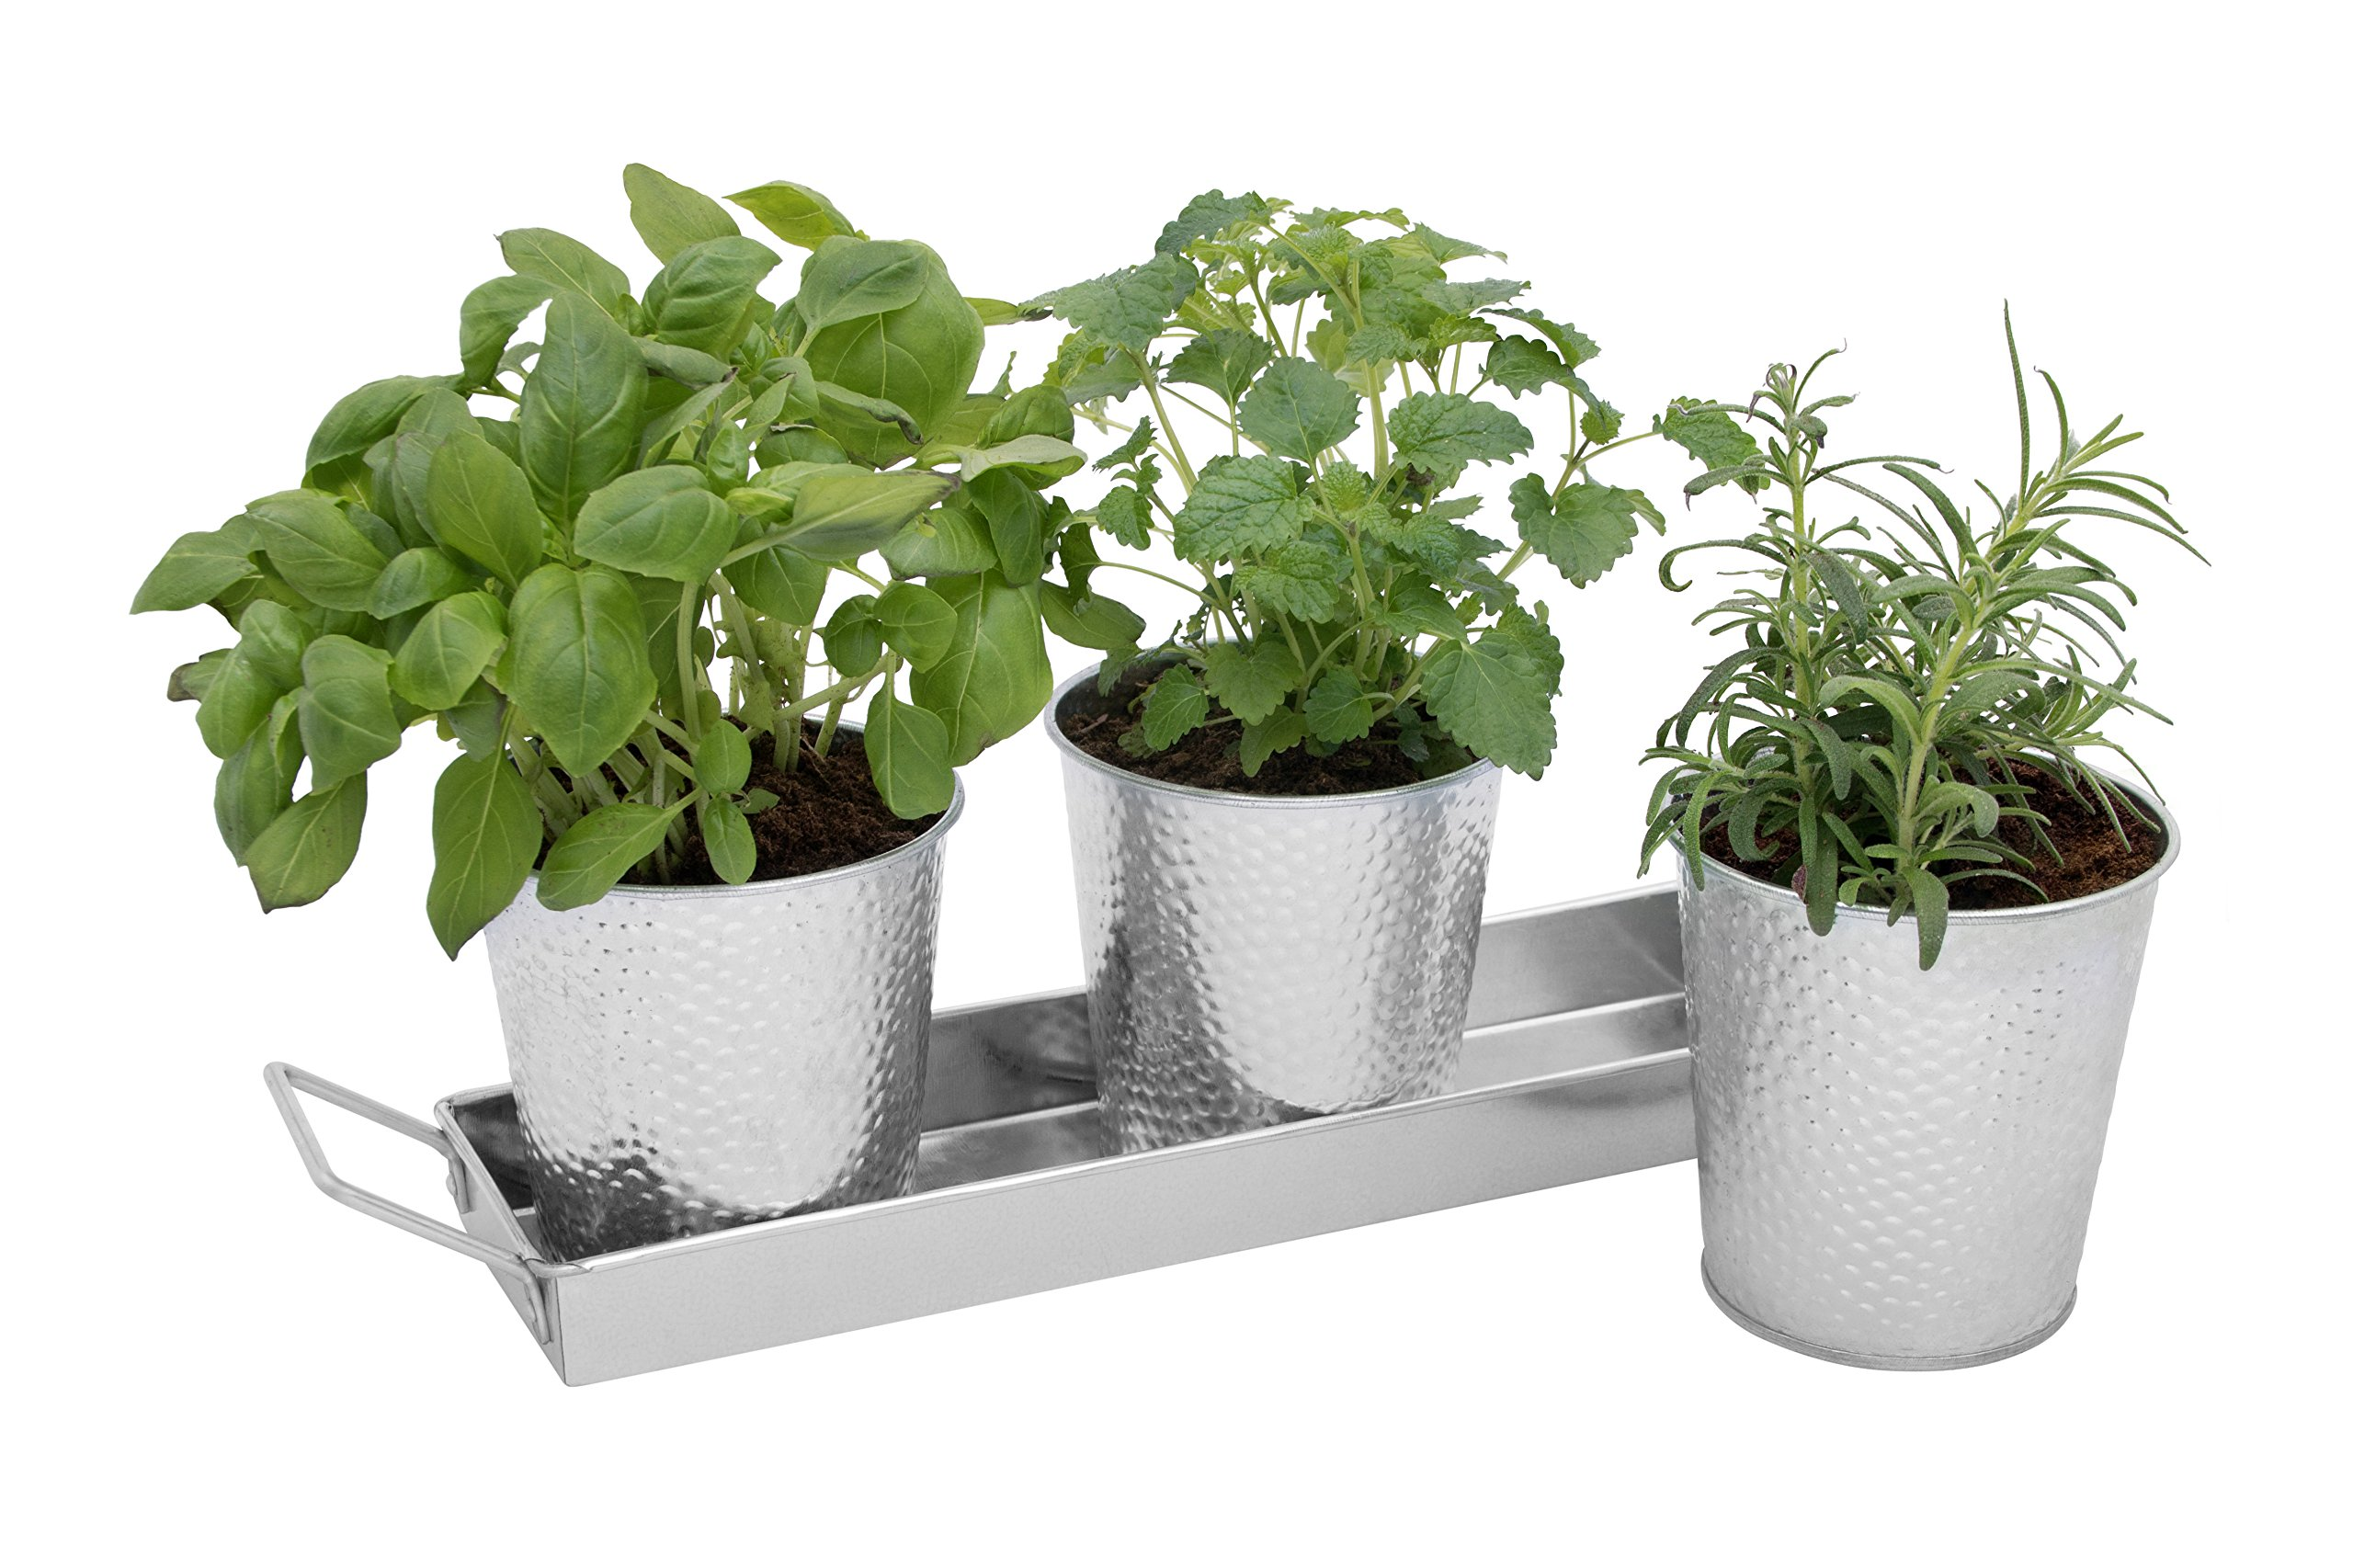 Saratoga Home Galvanized Planter Pots with Tray Set - Indoor Herb Garden - Utensil Caddy - Use on Windowsill or as Outdoor Flower Pots, for Succulents, Wedding Table Decorations, Snacks